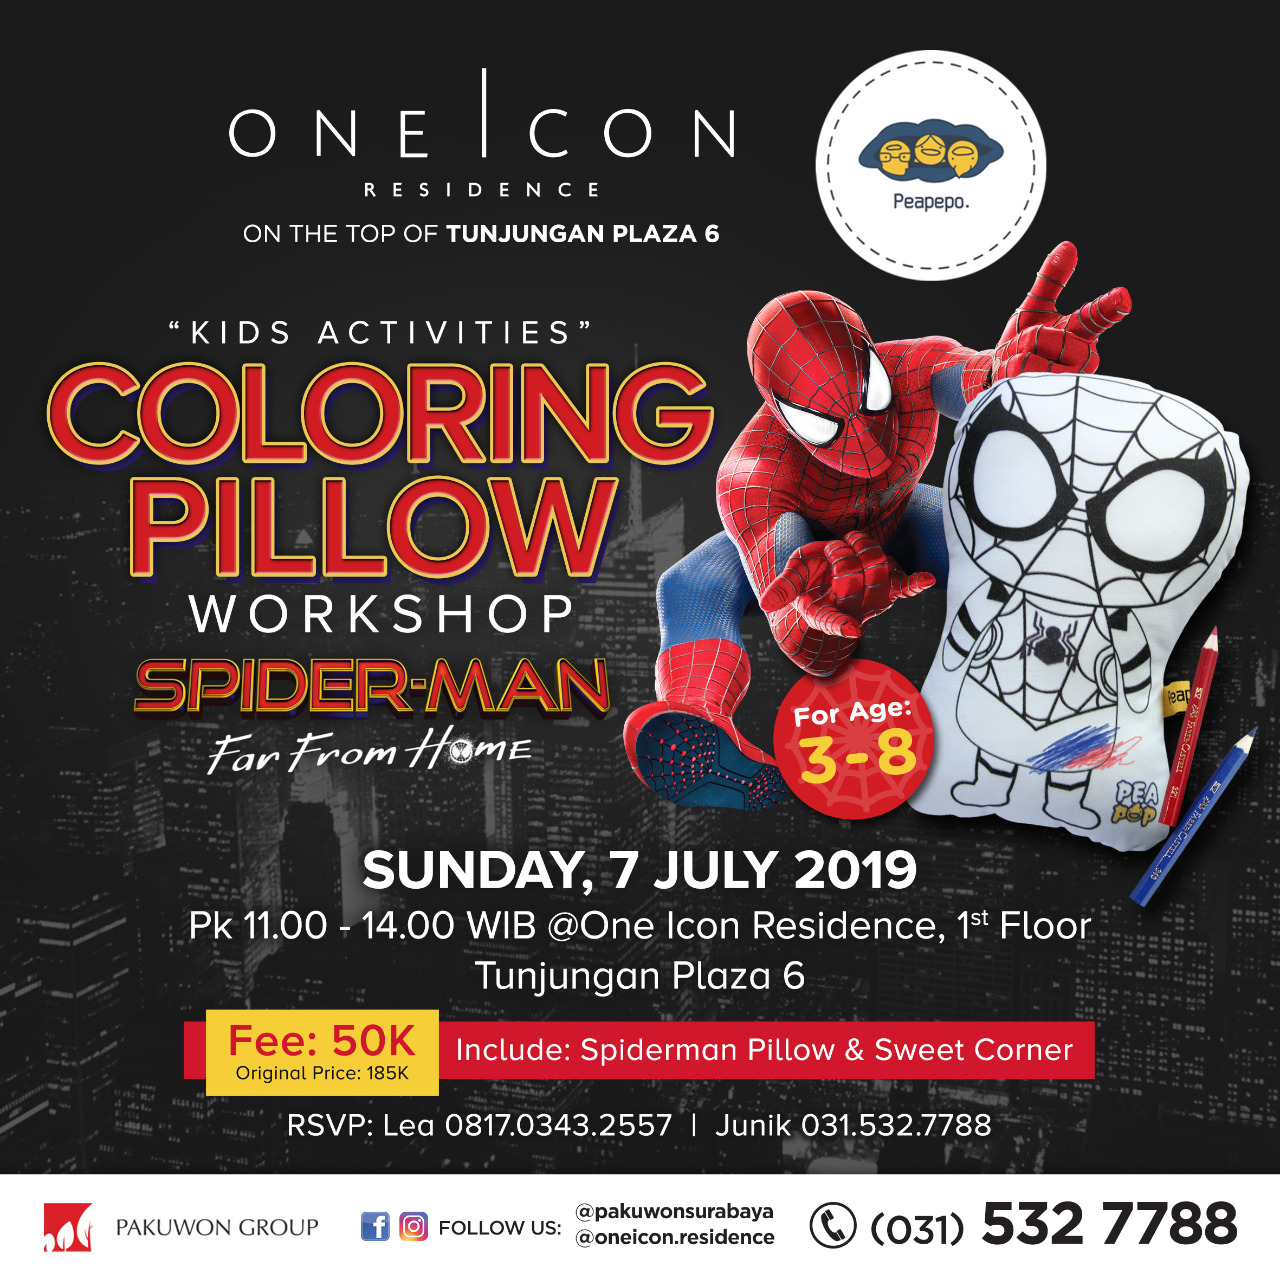 Kids Activities Coloring Pillow Workshop with Peapepo at One Icon Residence